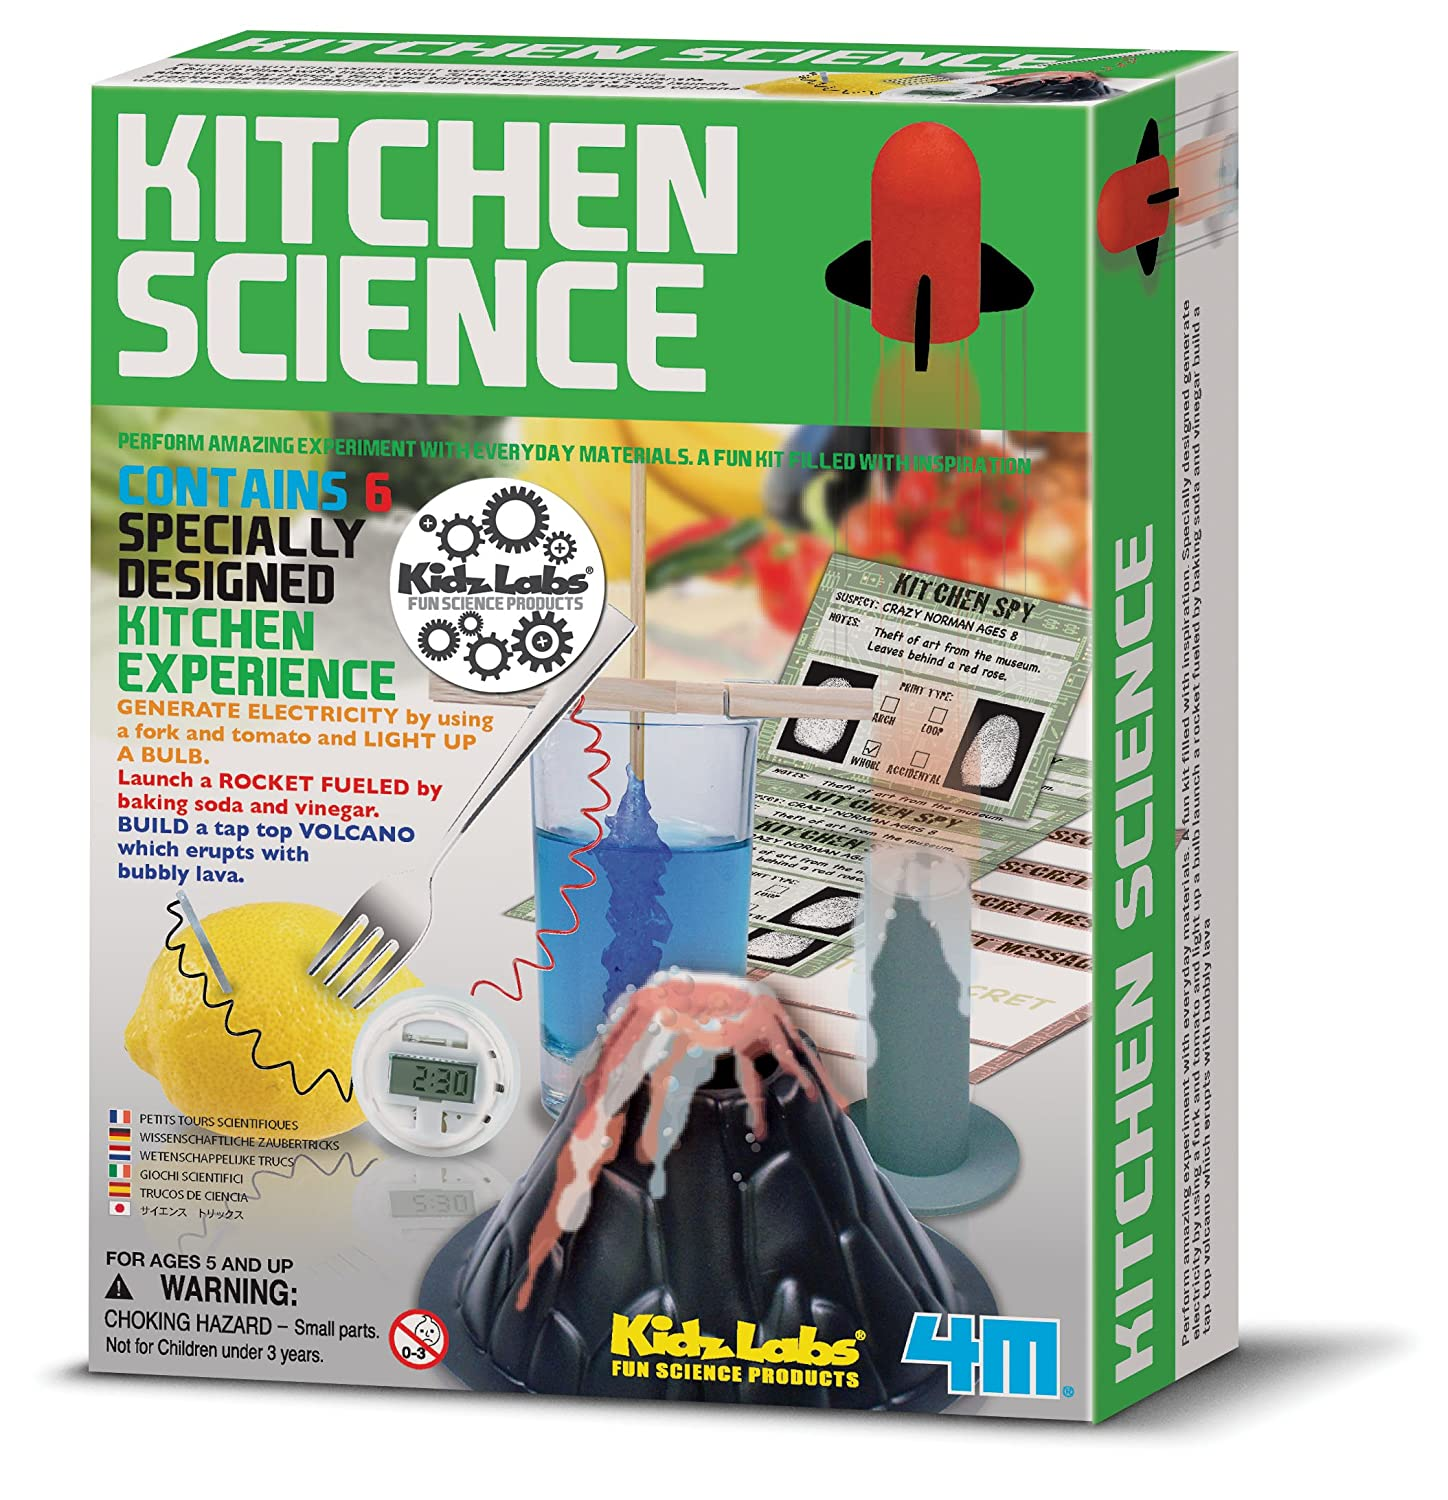 Create your own kitchen science experiments simple to make set educational educational science present gift ideal for christmas xmas stocking fillers